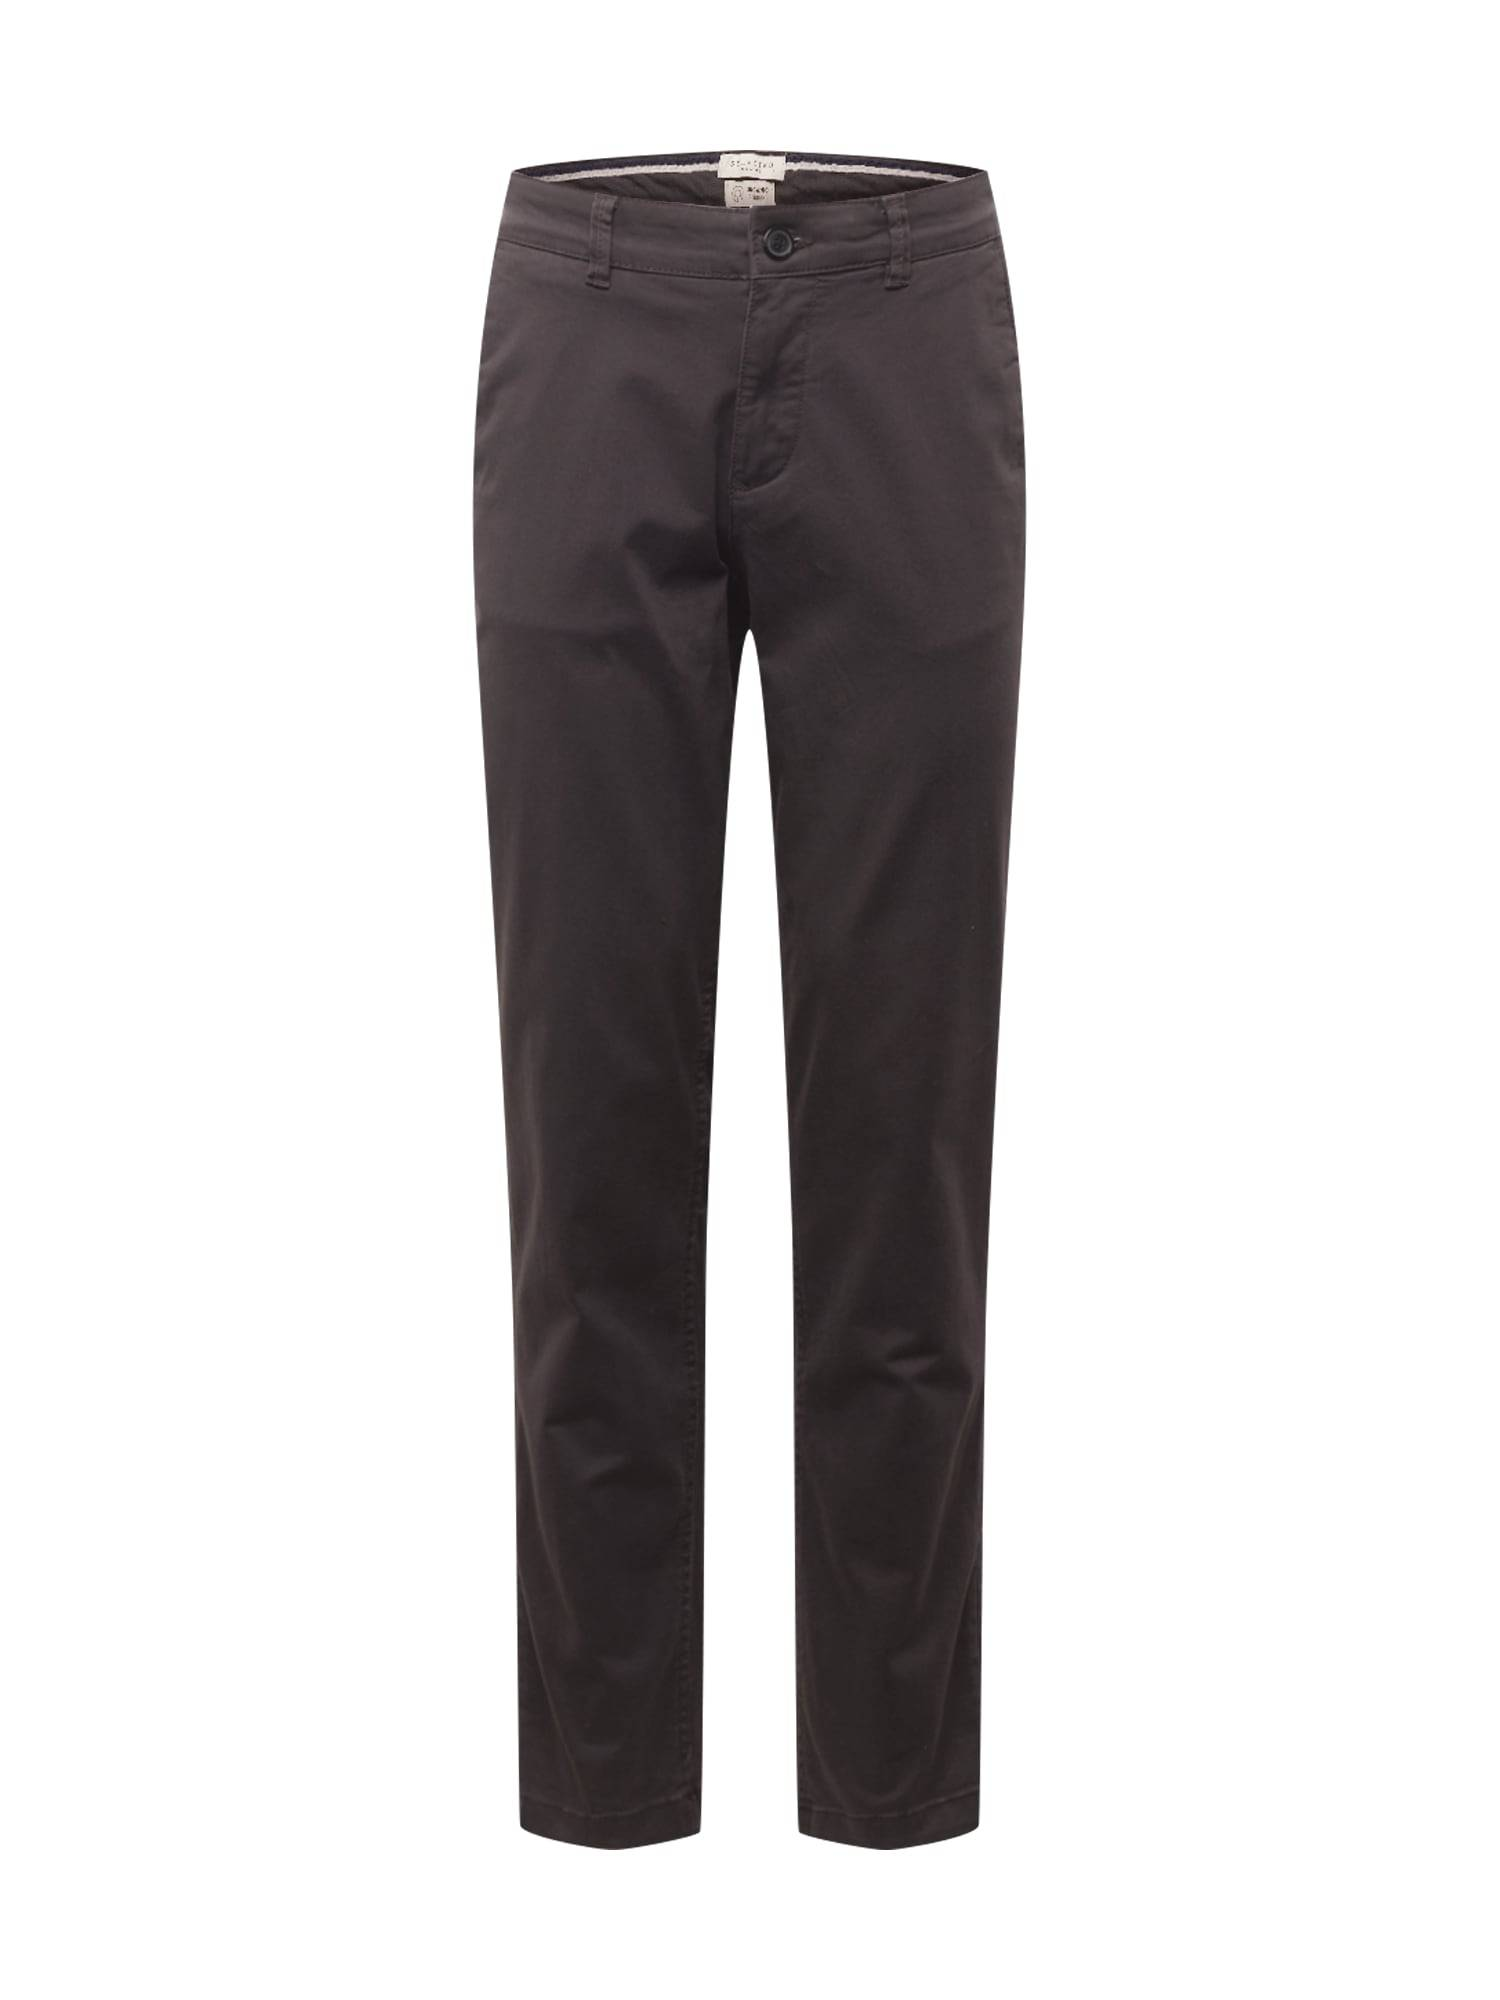 SELECTED HOMME Pantalon chino 'NEW PARIS'  - Gris - Taille: 30 - male